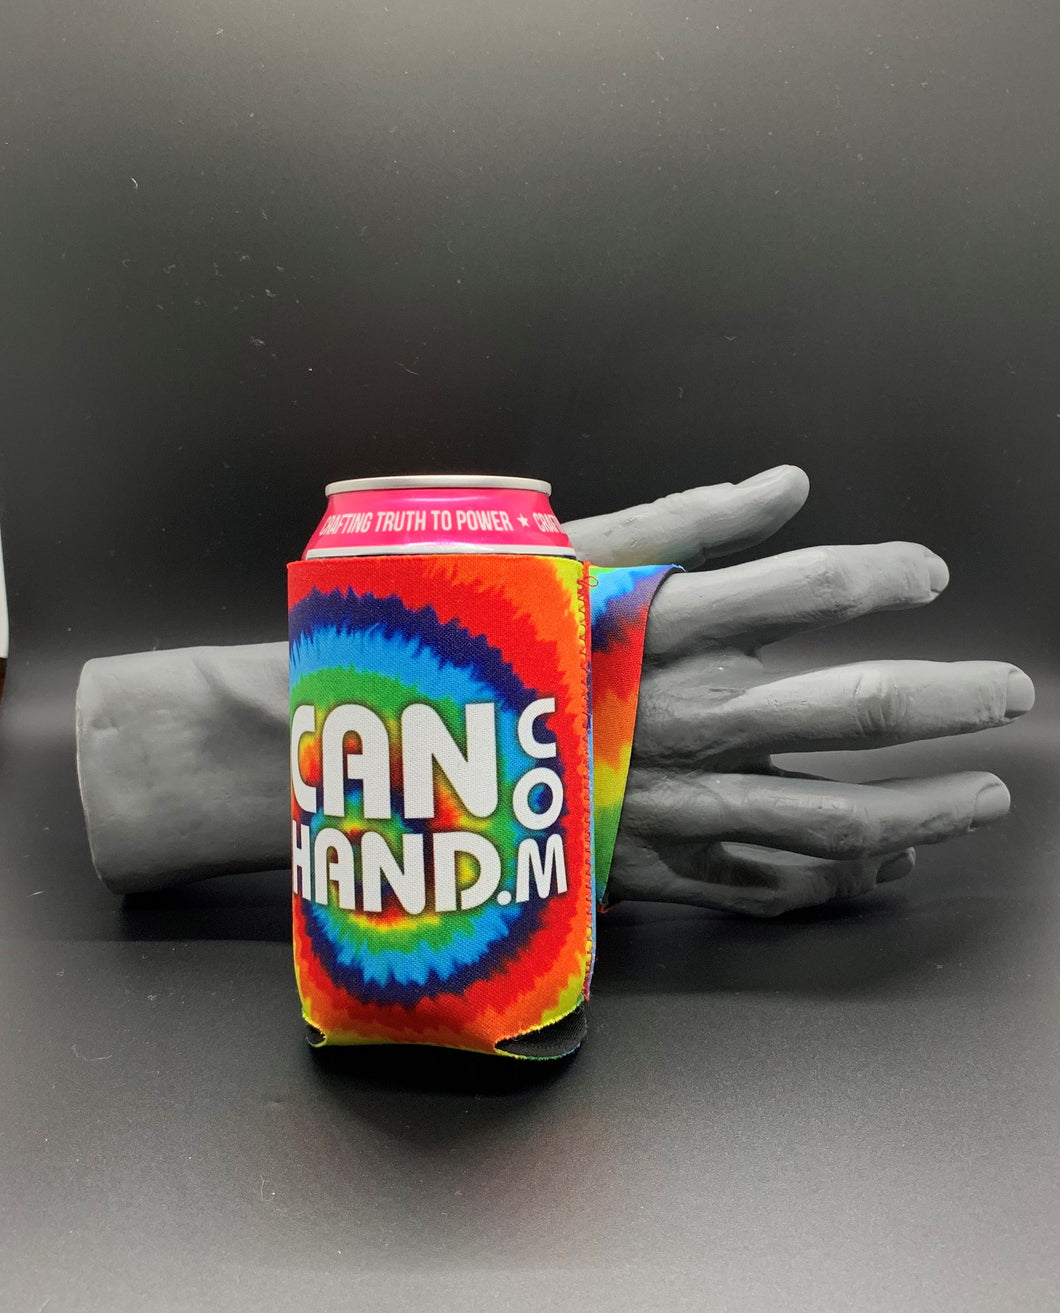 The Can Hand - Dude, Who Took My Lighter Edition.